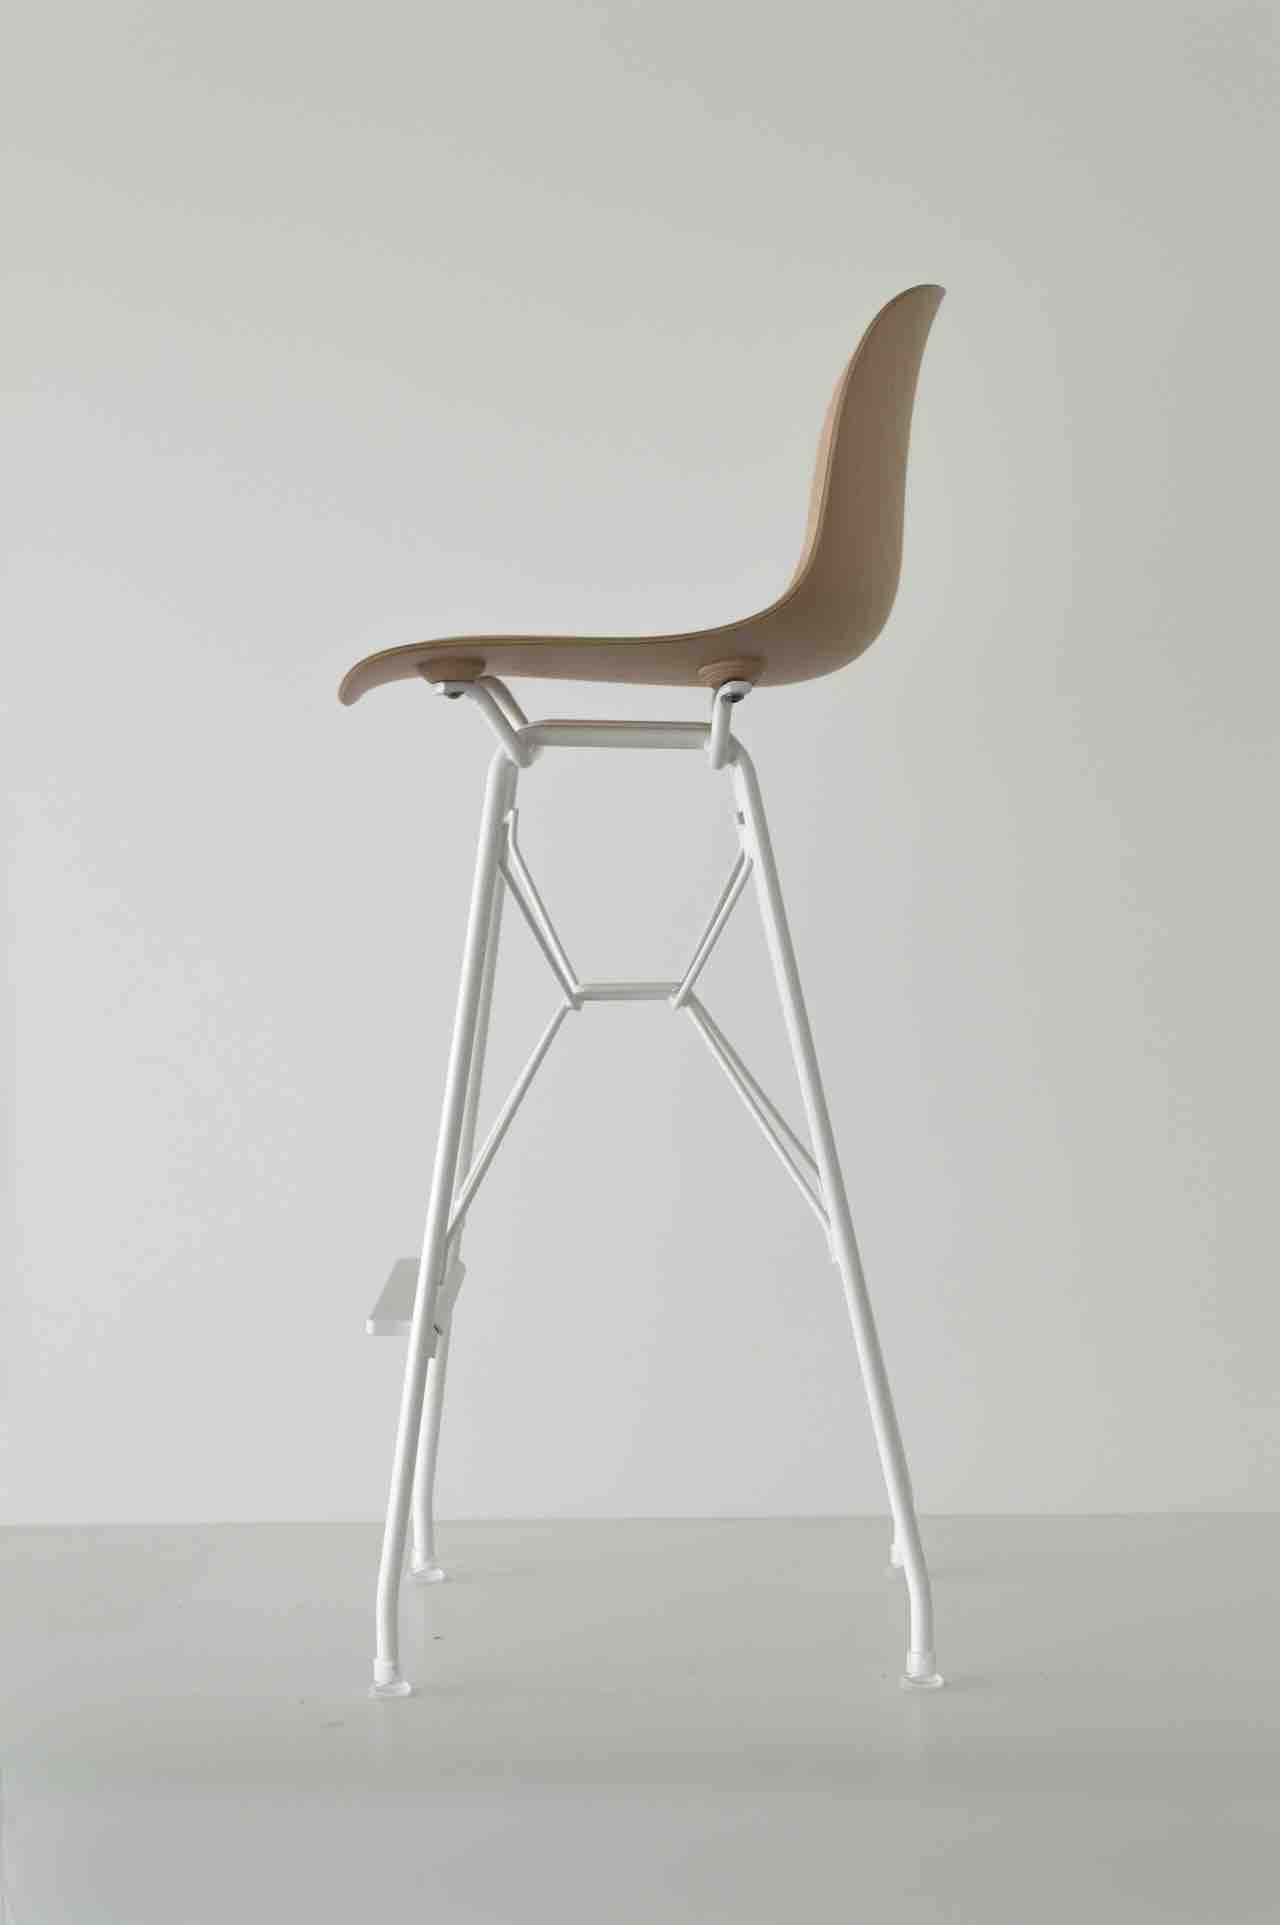 The Troy stool with the seat in beech plywood and a structure painted in white polyester. Design Marcel Wanders, Magis 2018.